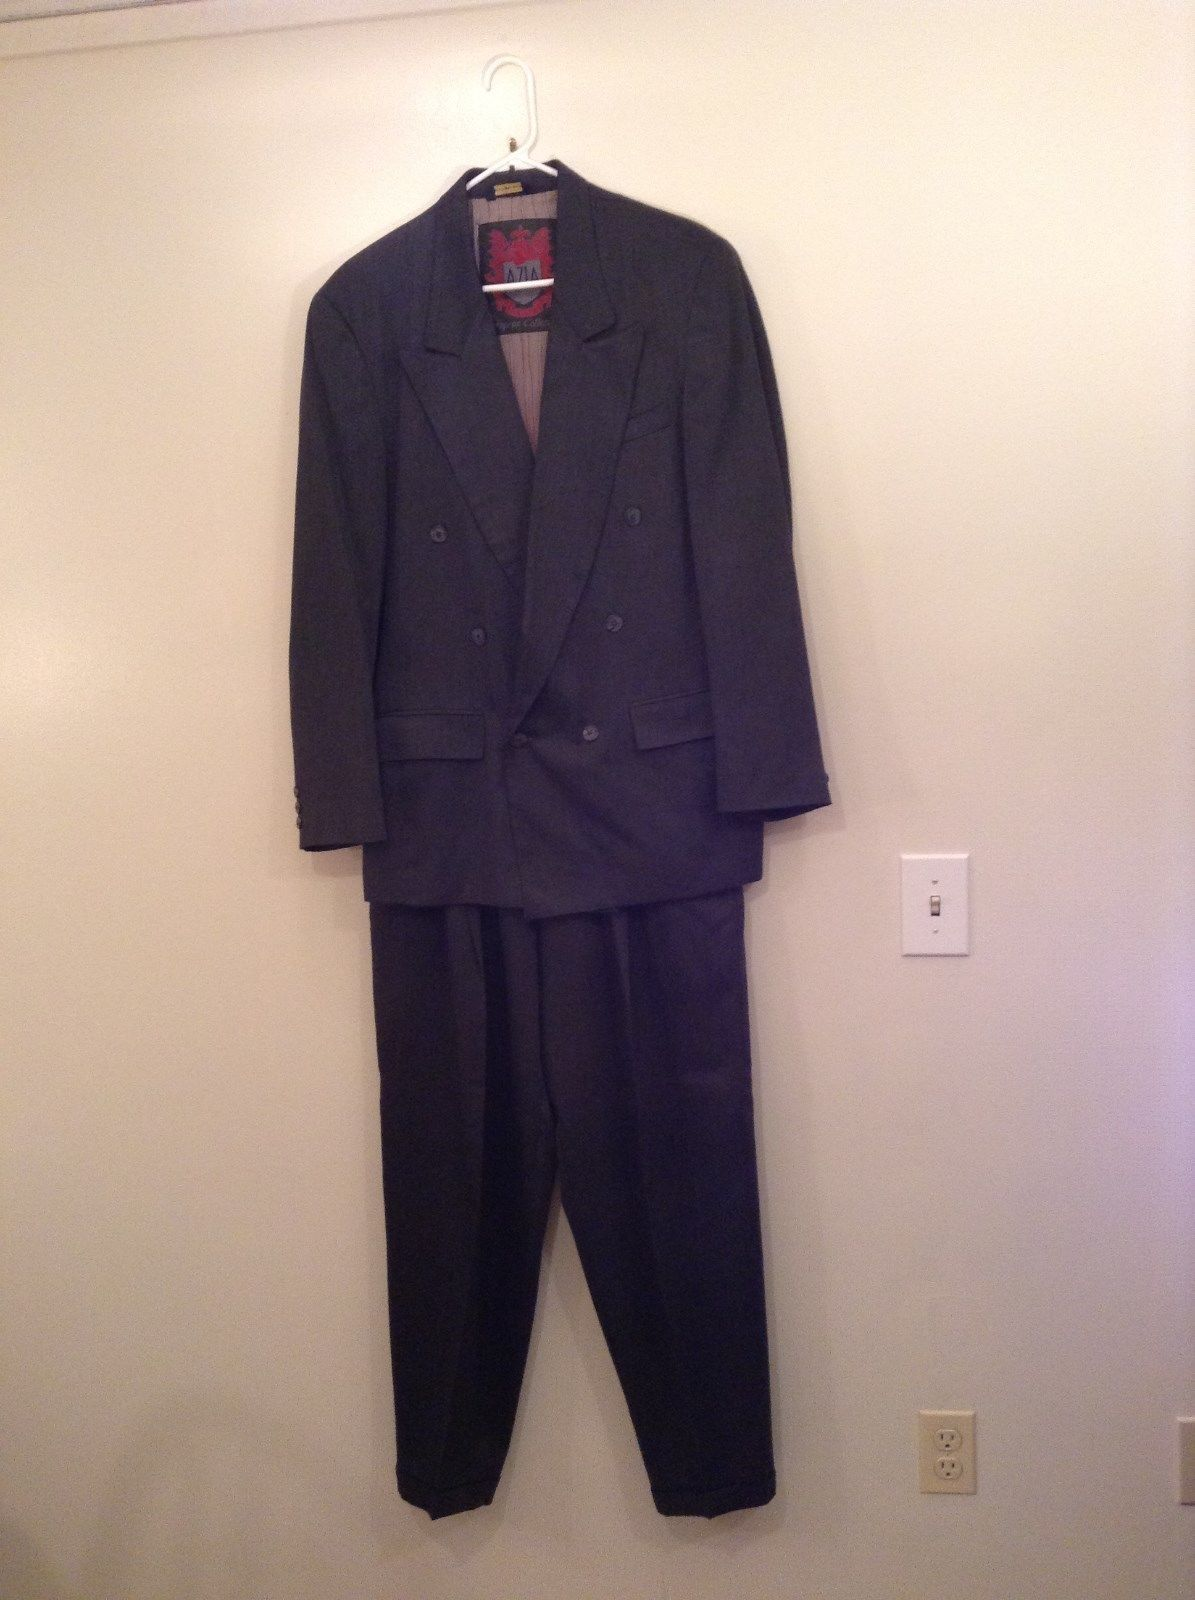 AZIA European Collection Dark Gray Jacket and Pant Suit 100 Percent Wool Size M